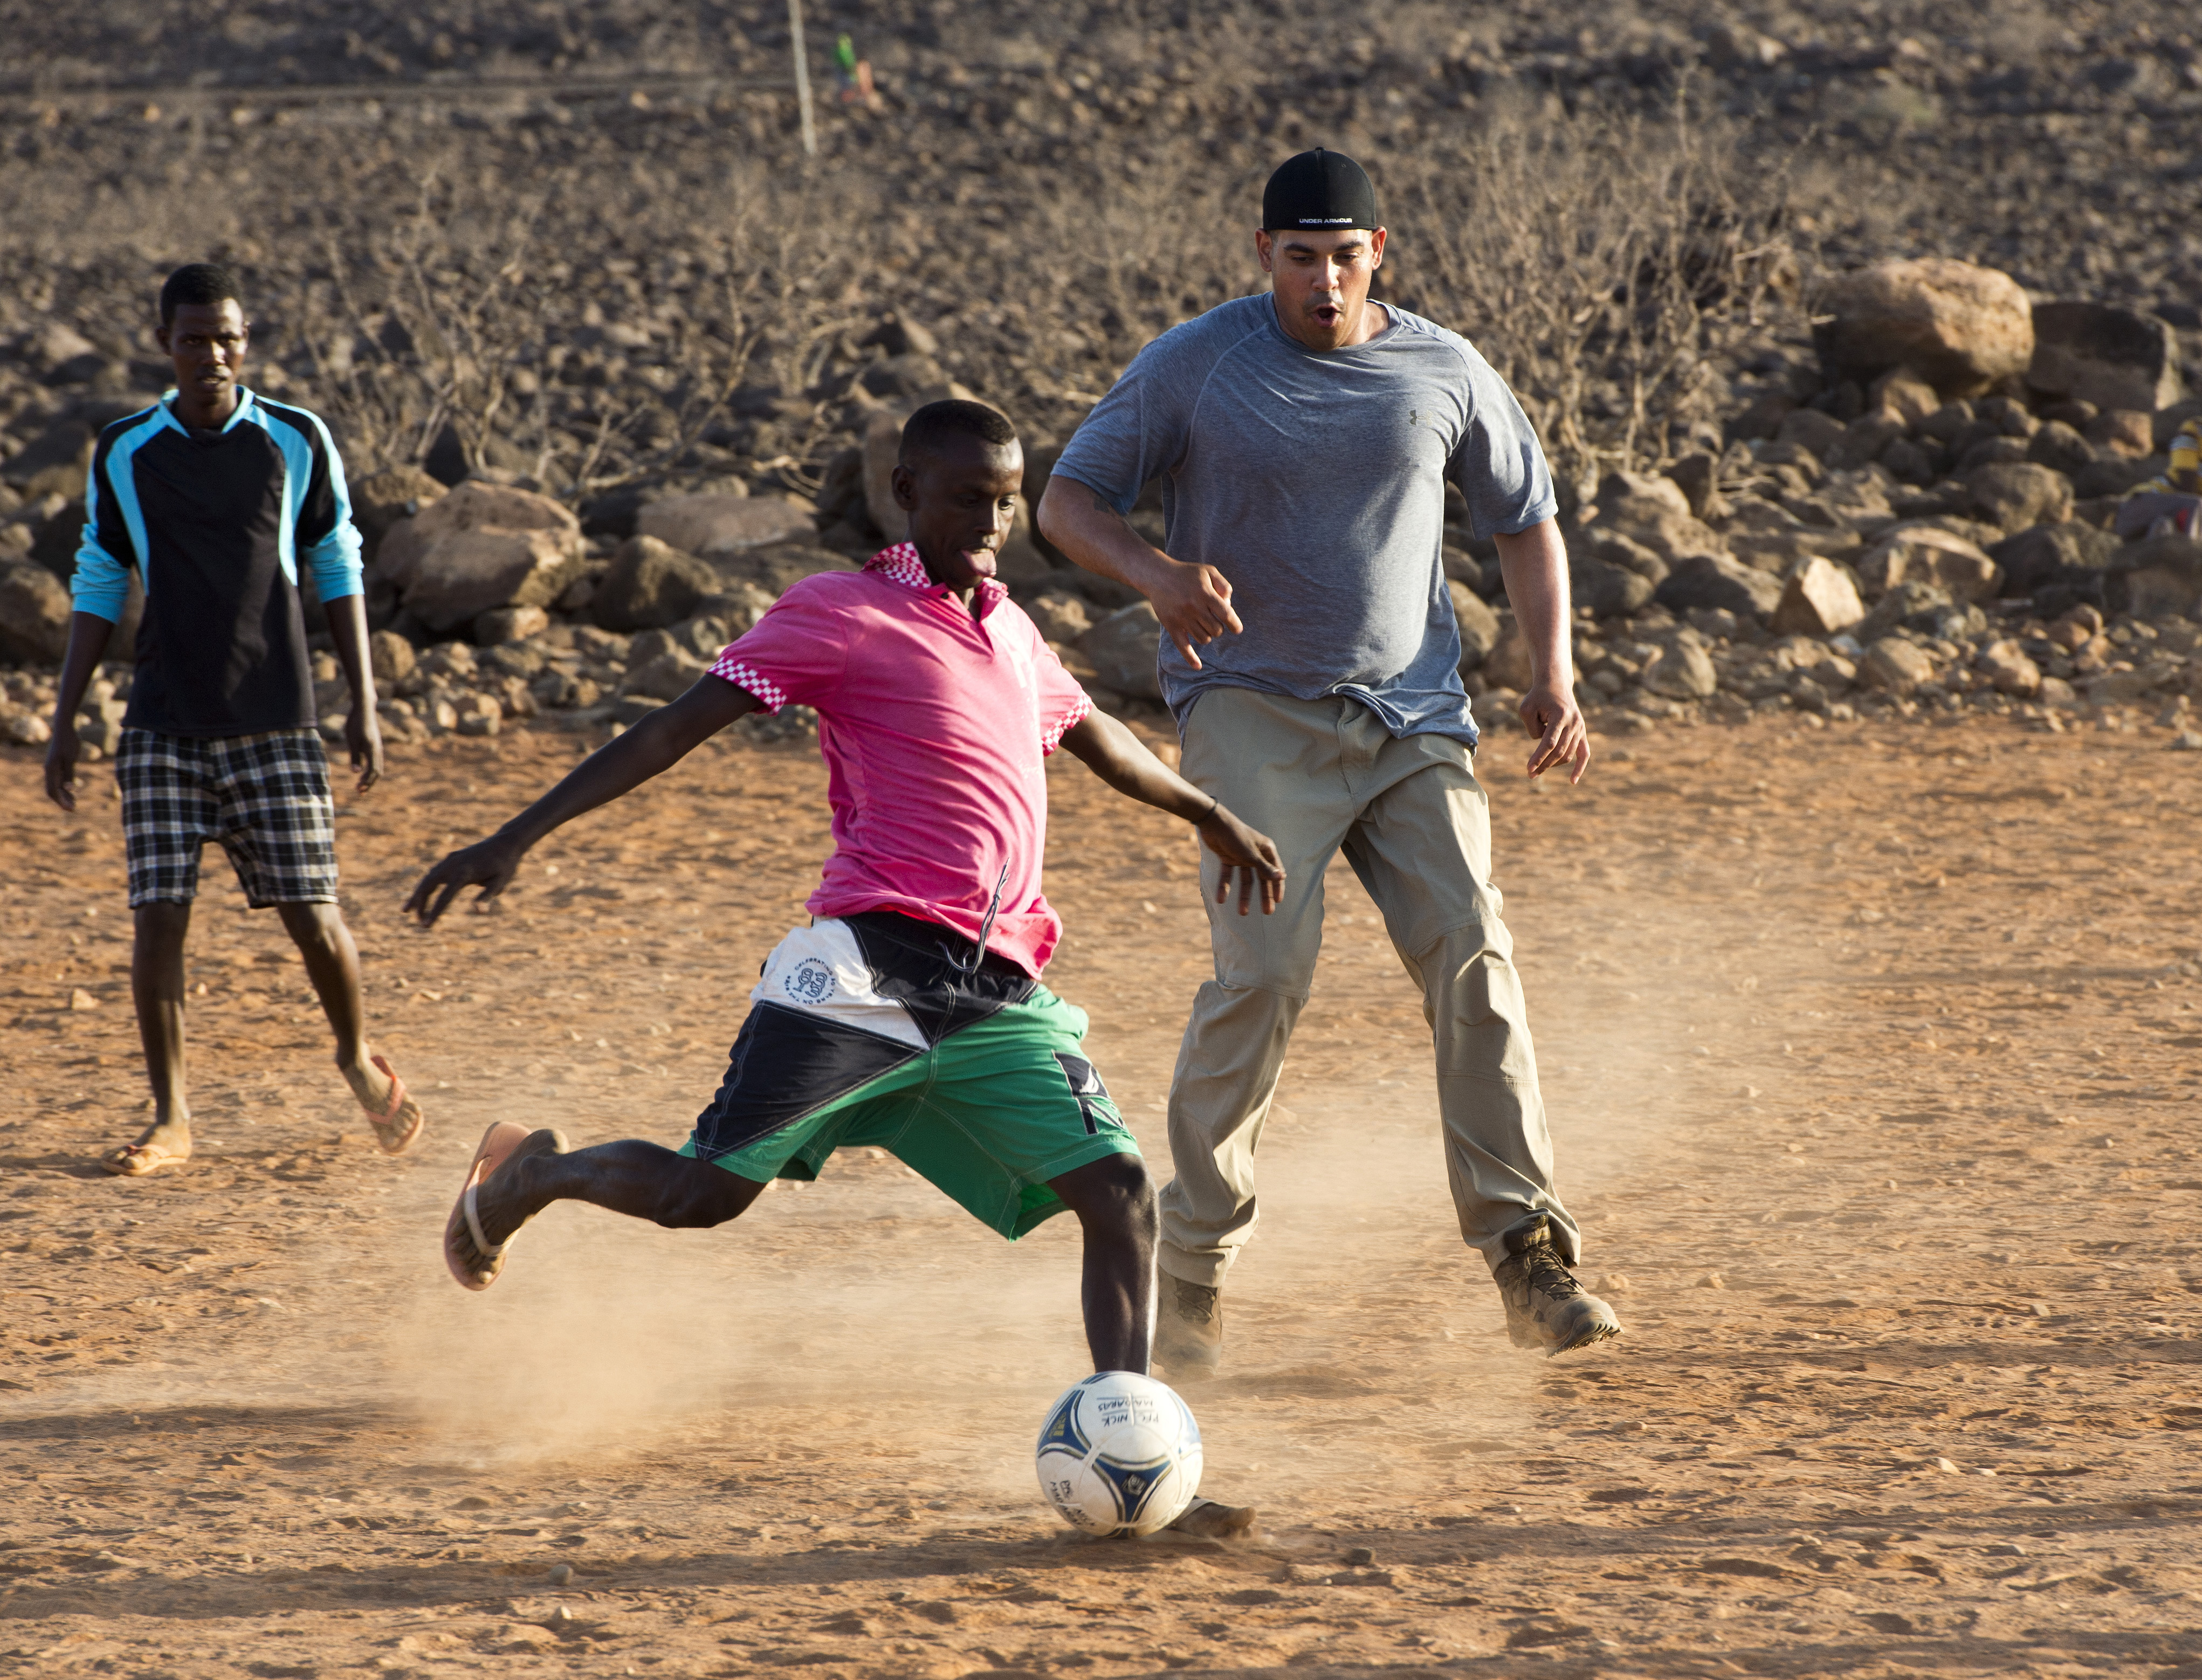 A Chebelley Village soccer player readies a kick as a defender for the Combined Joint Task Force-Horn of Africa team rushes him during the Chebelley Village Game Night soccer match at Chebelley Village, Djibouti, April 29, 2015.  The U.S. Army's 404th Civil Affairs Battalion hosts the monthly soccer match to build and grow the relationship between Chebelley Village and camp. (U.S. Air Force photo by Staff Sgt. Nathan Maysonet)